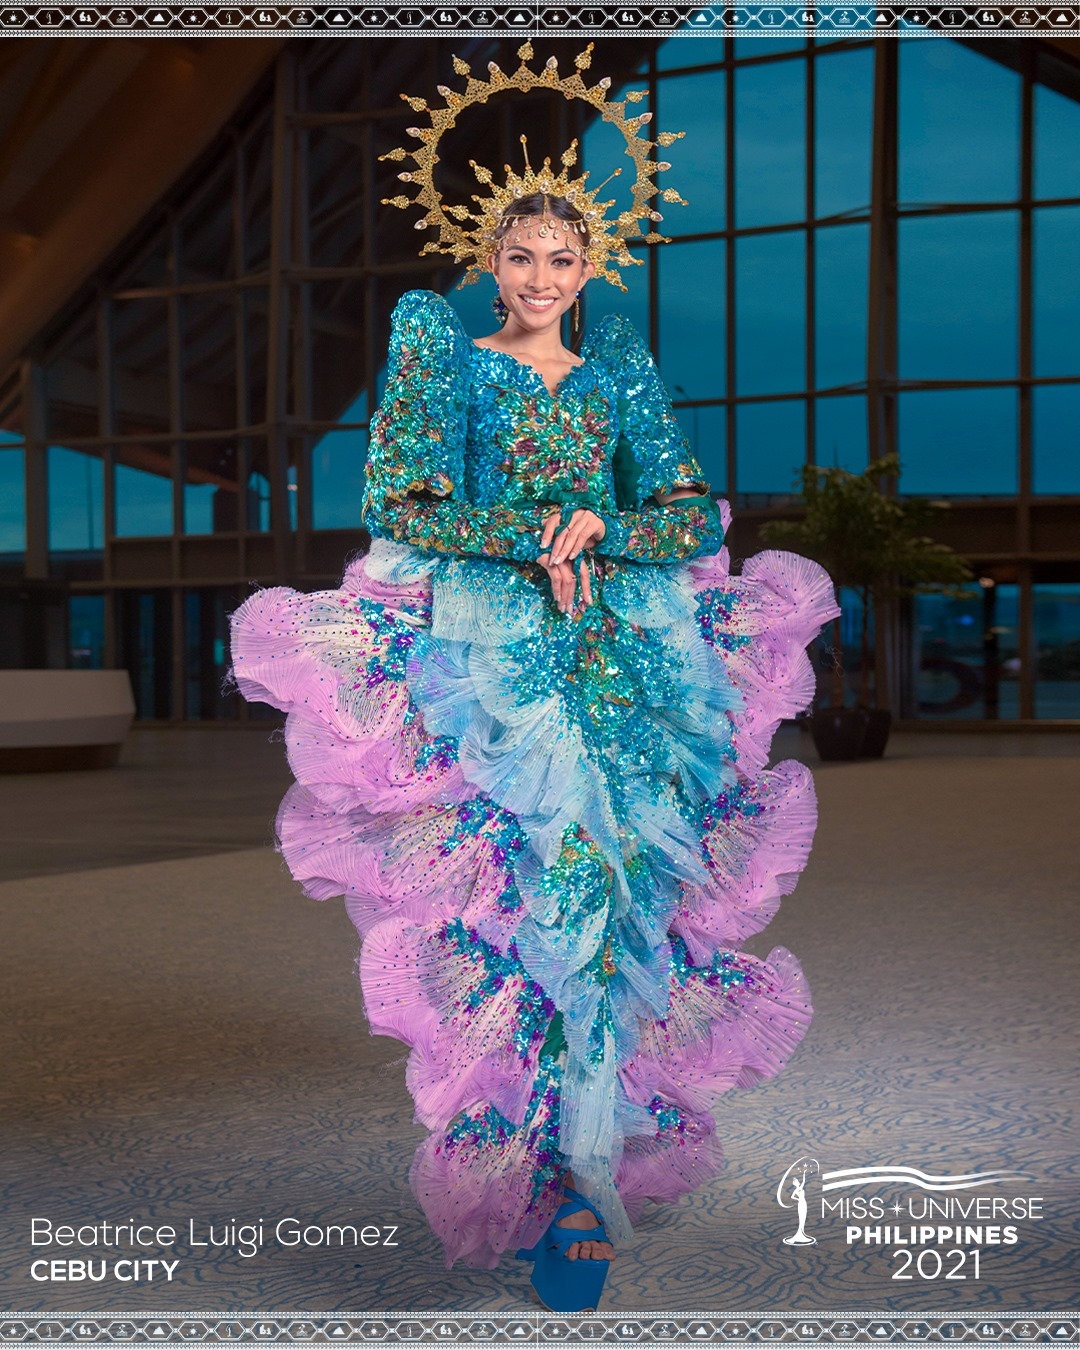 Miss Universe Philippines 2021 national costume